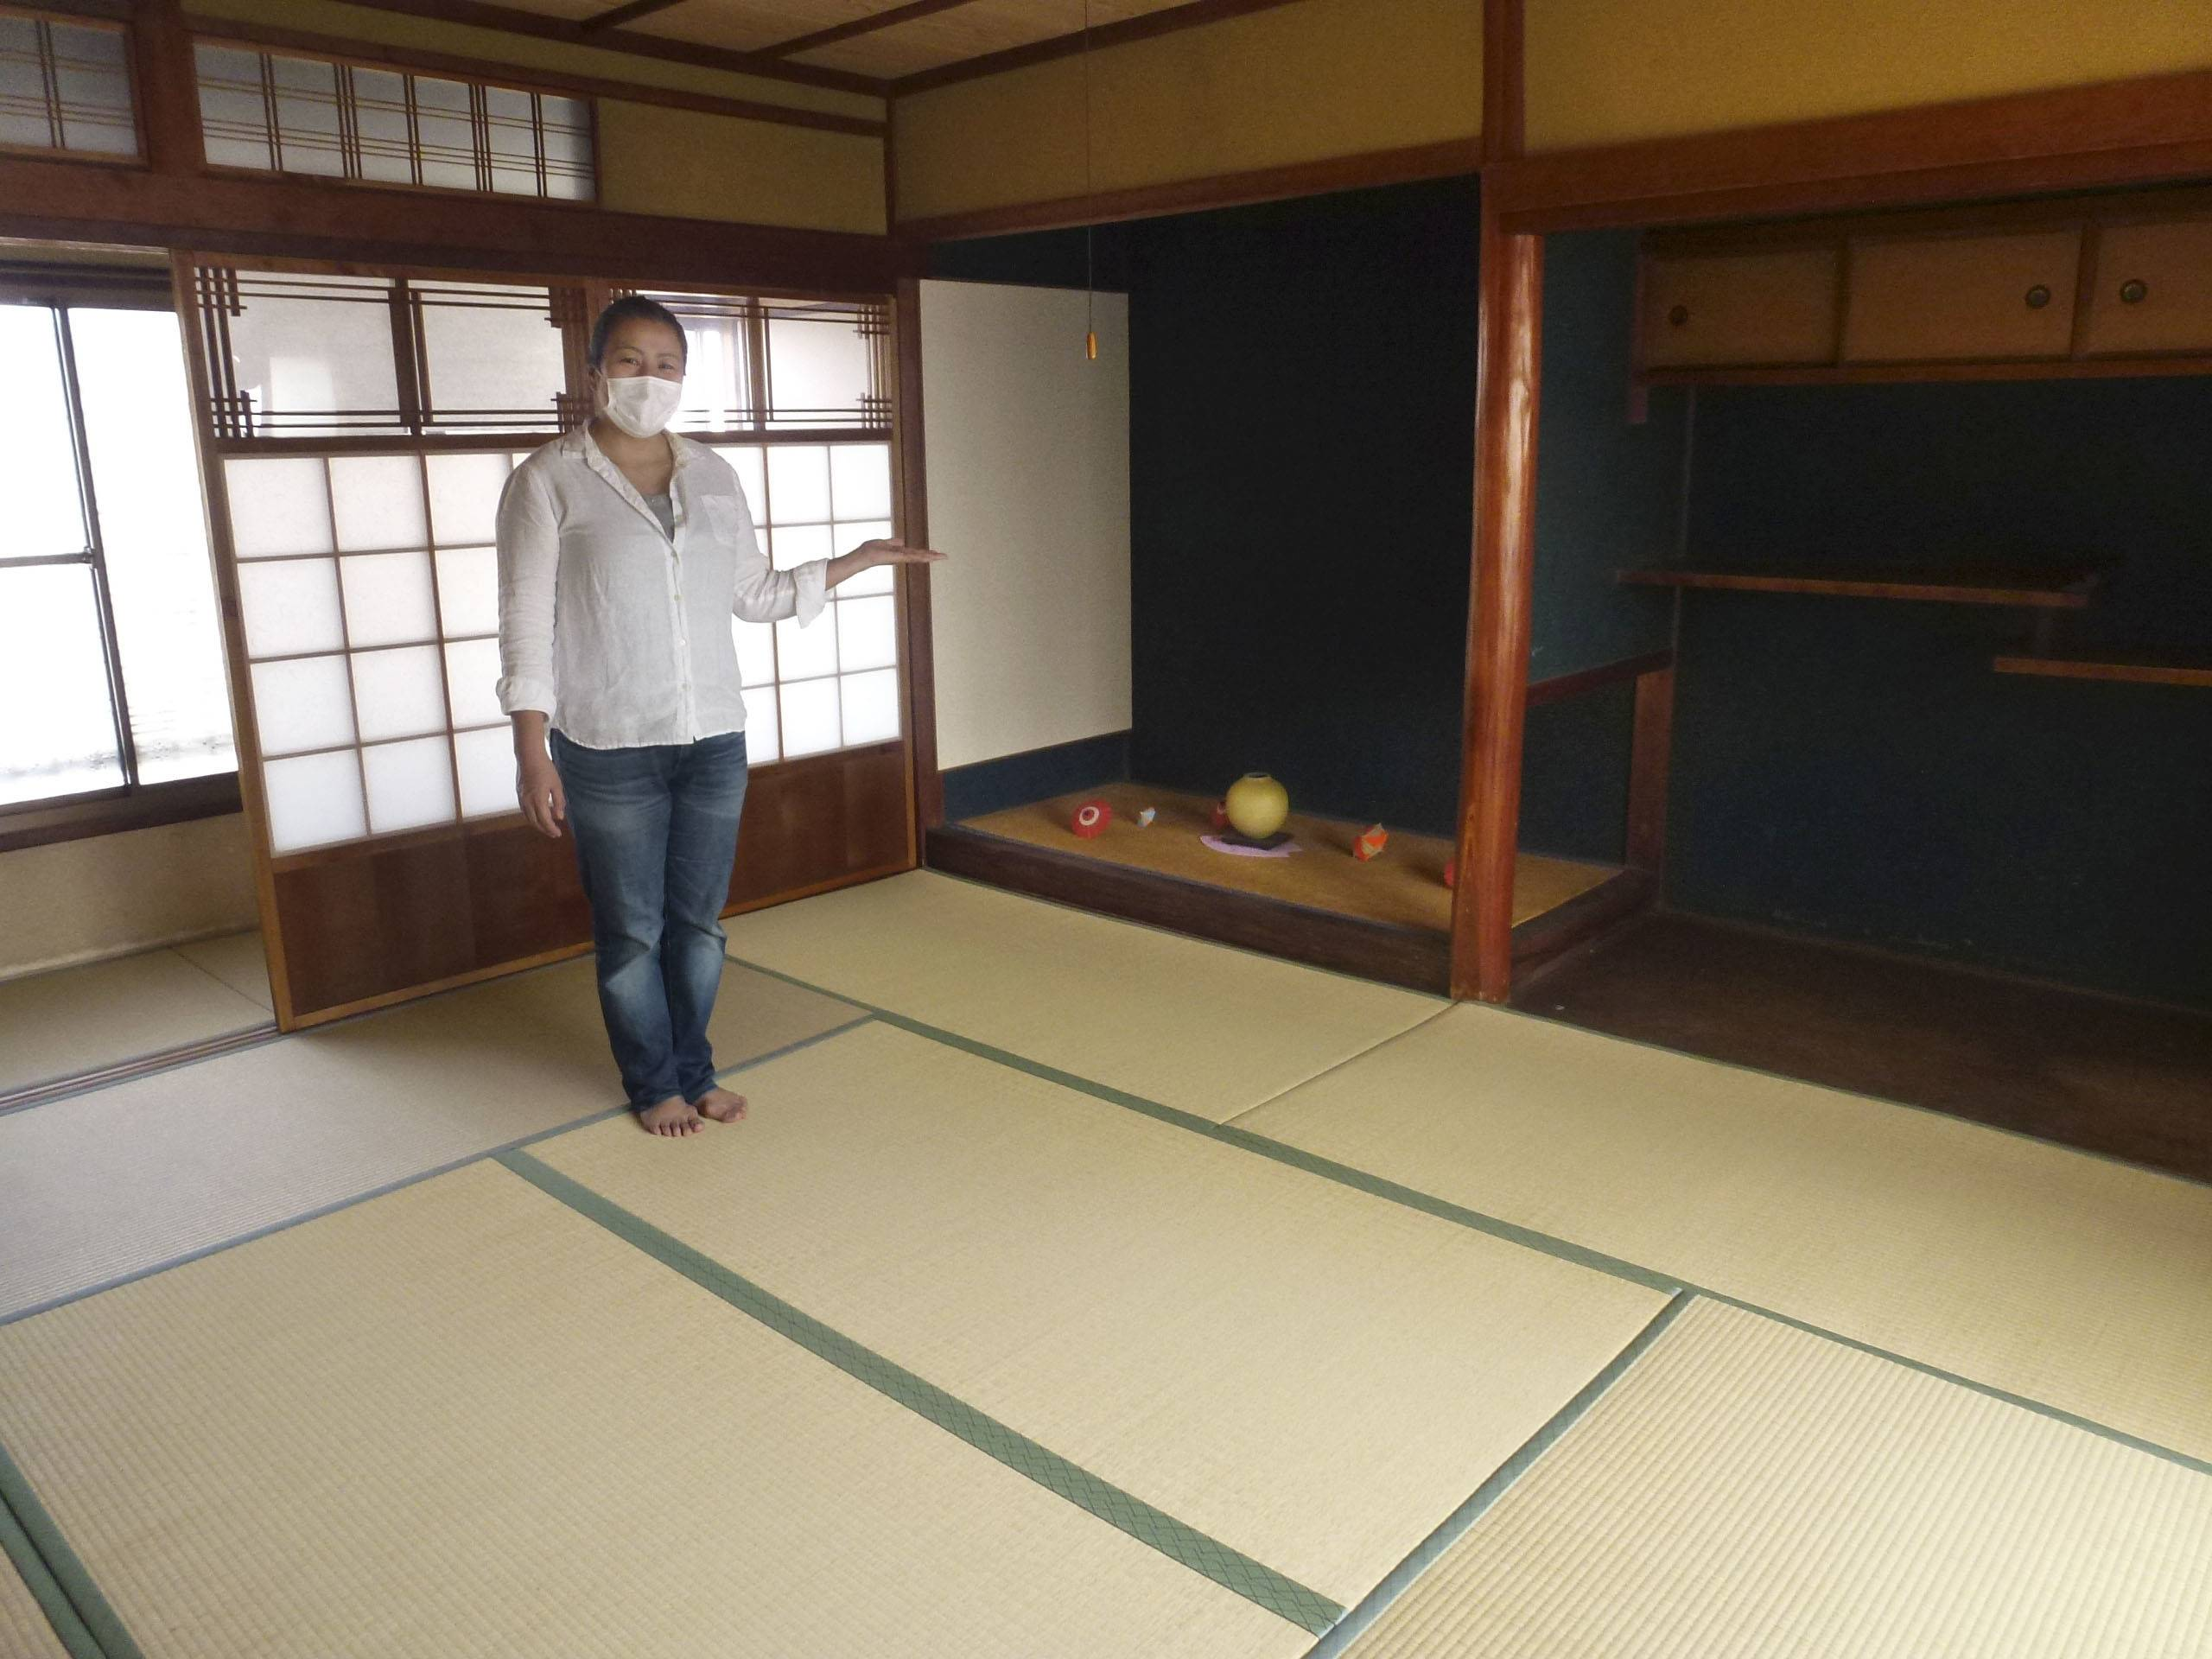 Six hostels in the city of Nara have started renting out their rooms as teleworking spaces, as many people work remotely and the number of tourists has fallen significantly due to the coronavirus outbreak. | KYODO